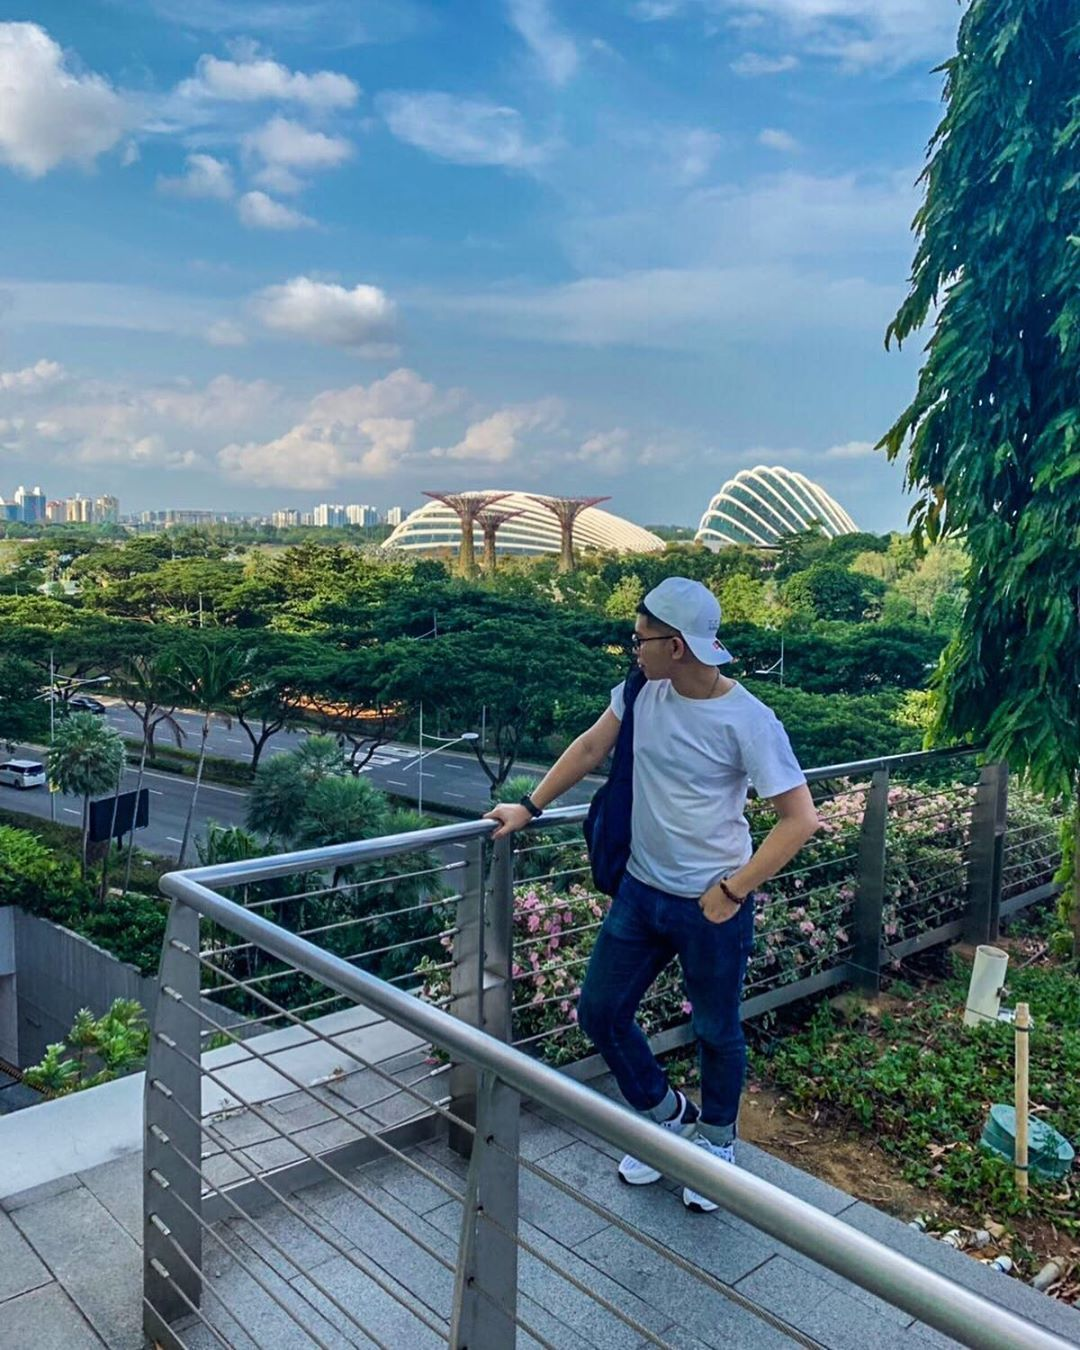 Hello September with highly expected  01.09.2019|02:00 pm #september #2019 #trip #travel #travelling #destination #garden #gardenbythebay #challenge #chance #positive #lovetravel #hospitality #earth #sky #nature #yolo #youth #panorama #view #gardenview #singapore #helloseptember Hello September with highly expected  01.09.2019|02:00 pm #september #2019 #trip #travel #travelling #destination #garden #gardenbythebay #challenge #chance #positive #lovetravel #hospitality #earth #sky #nature #yolo #y #helloseptember